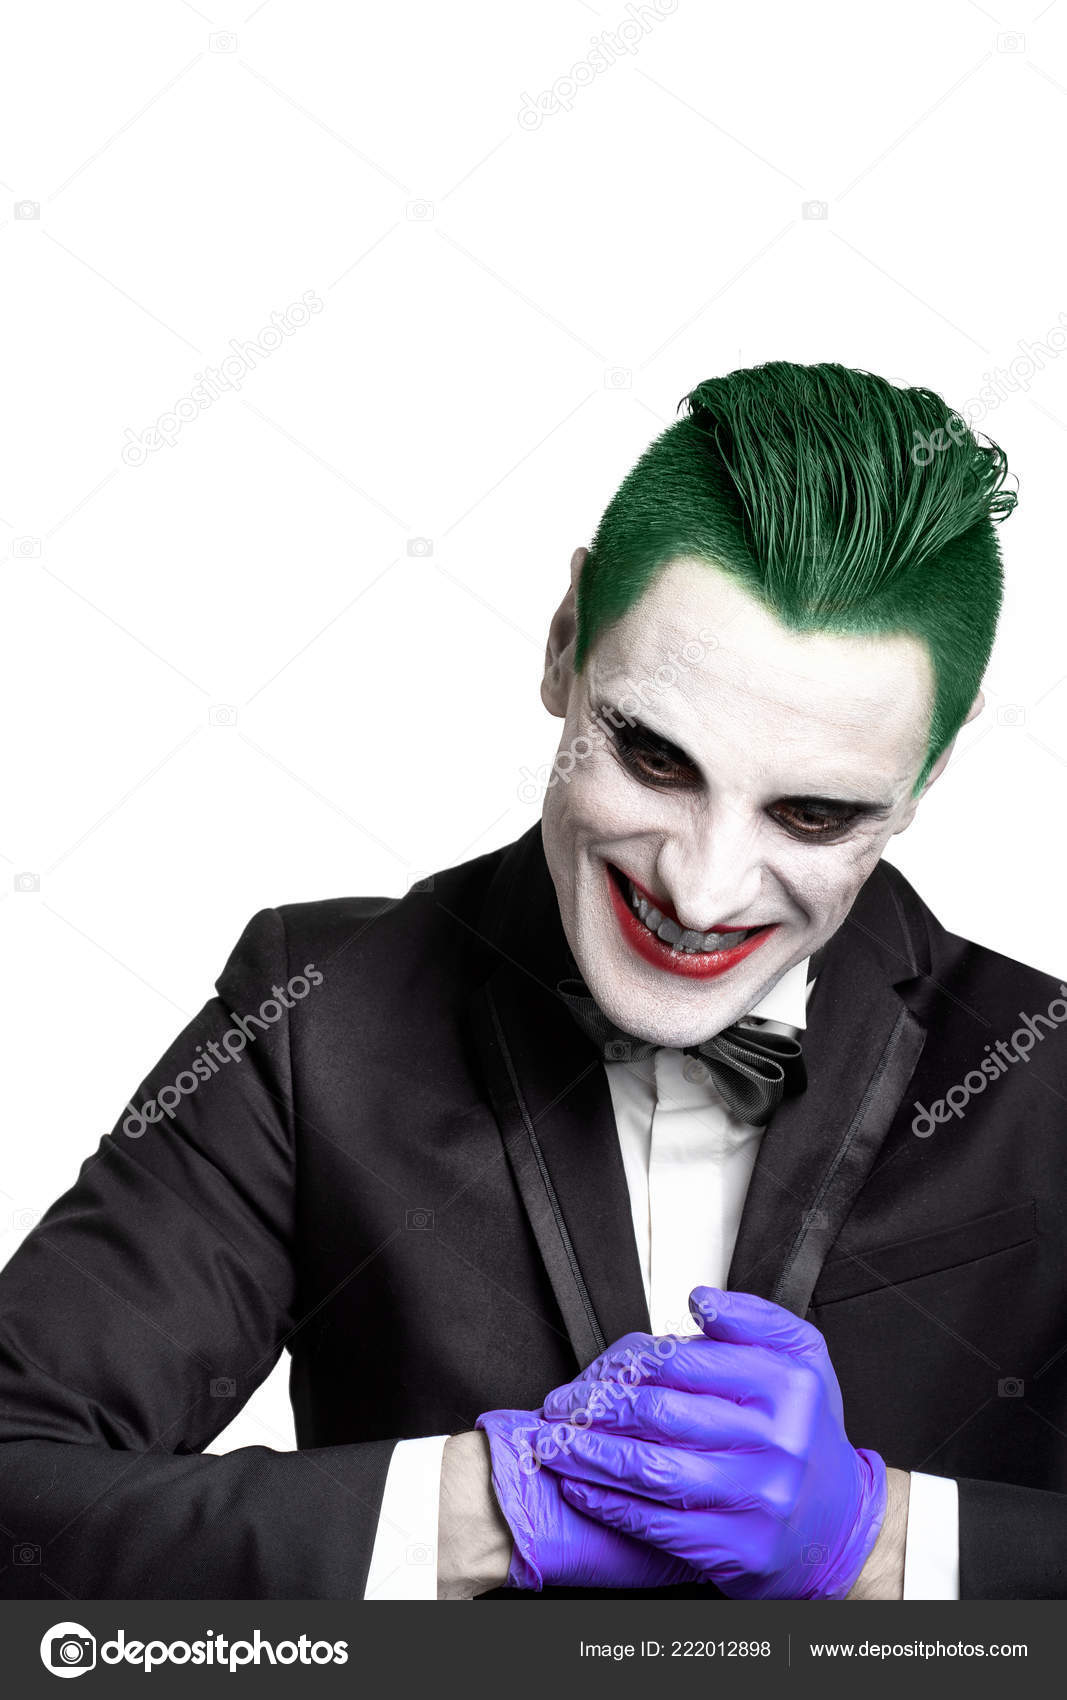 portrait of a joker. makeup for halloween. crazy image of a man in a